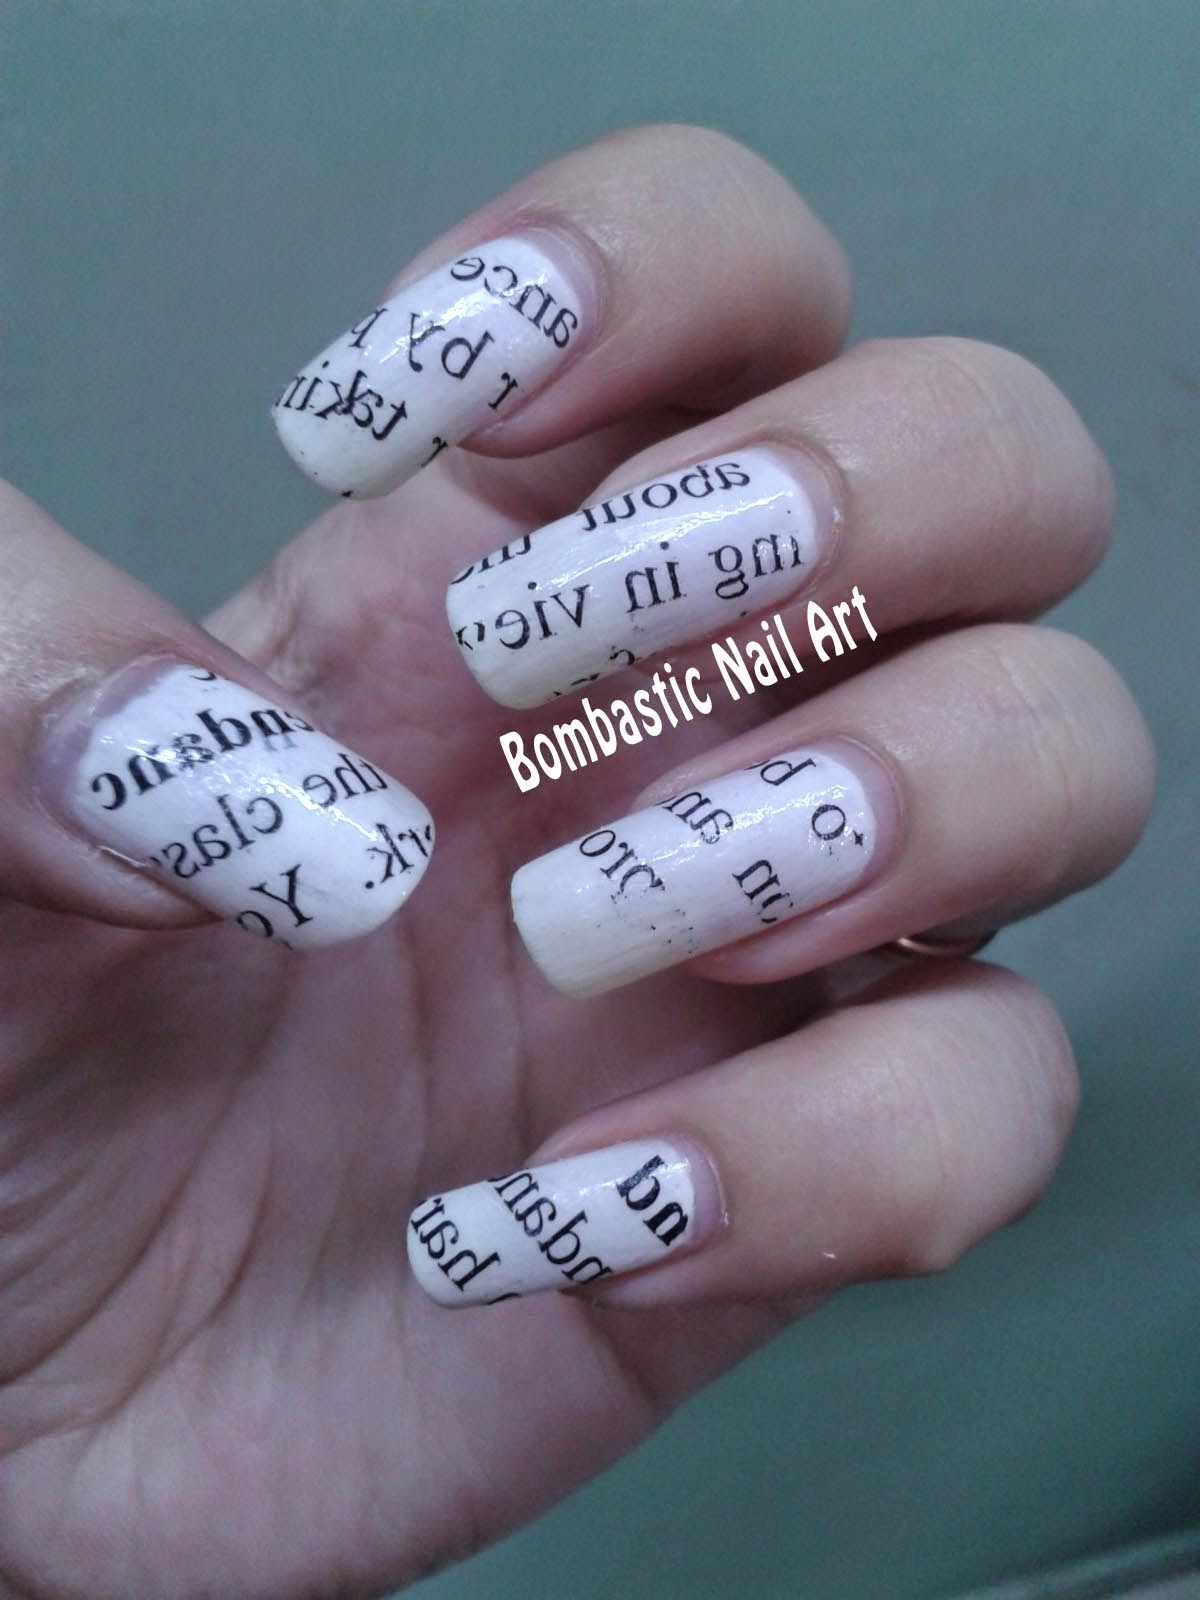 Day 25: Newspaper Nails – Bombastic Nail Art